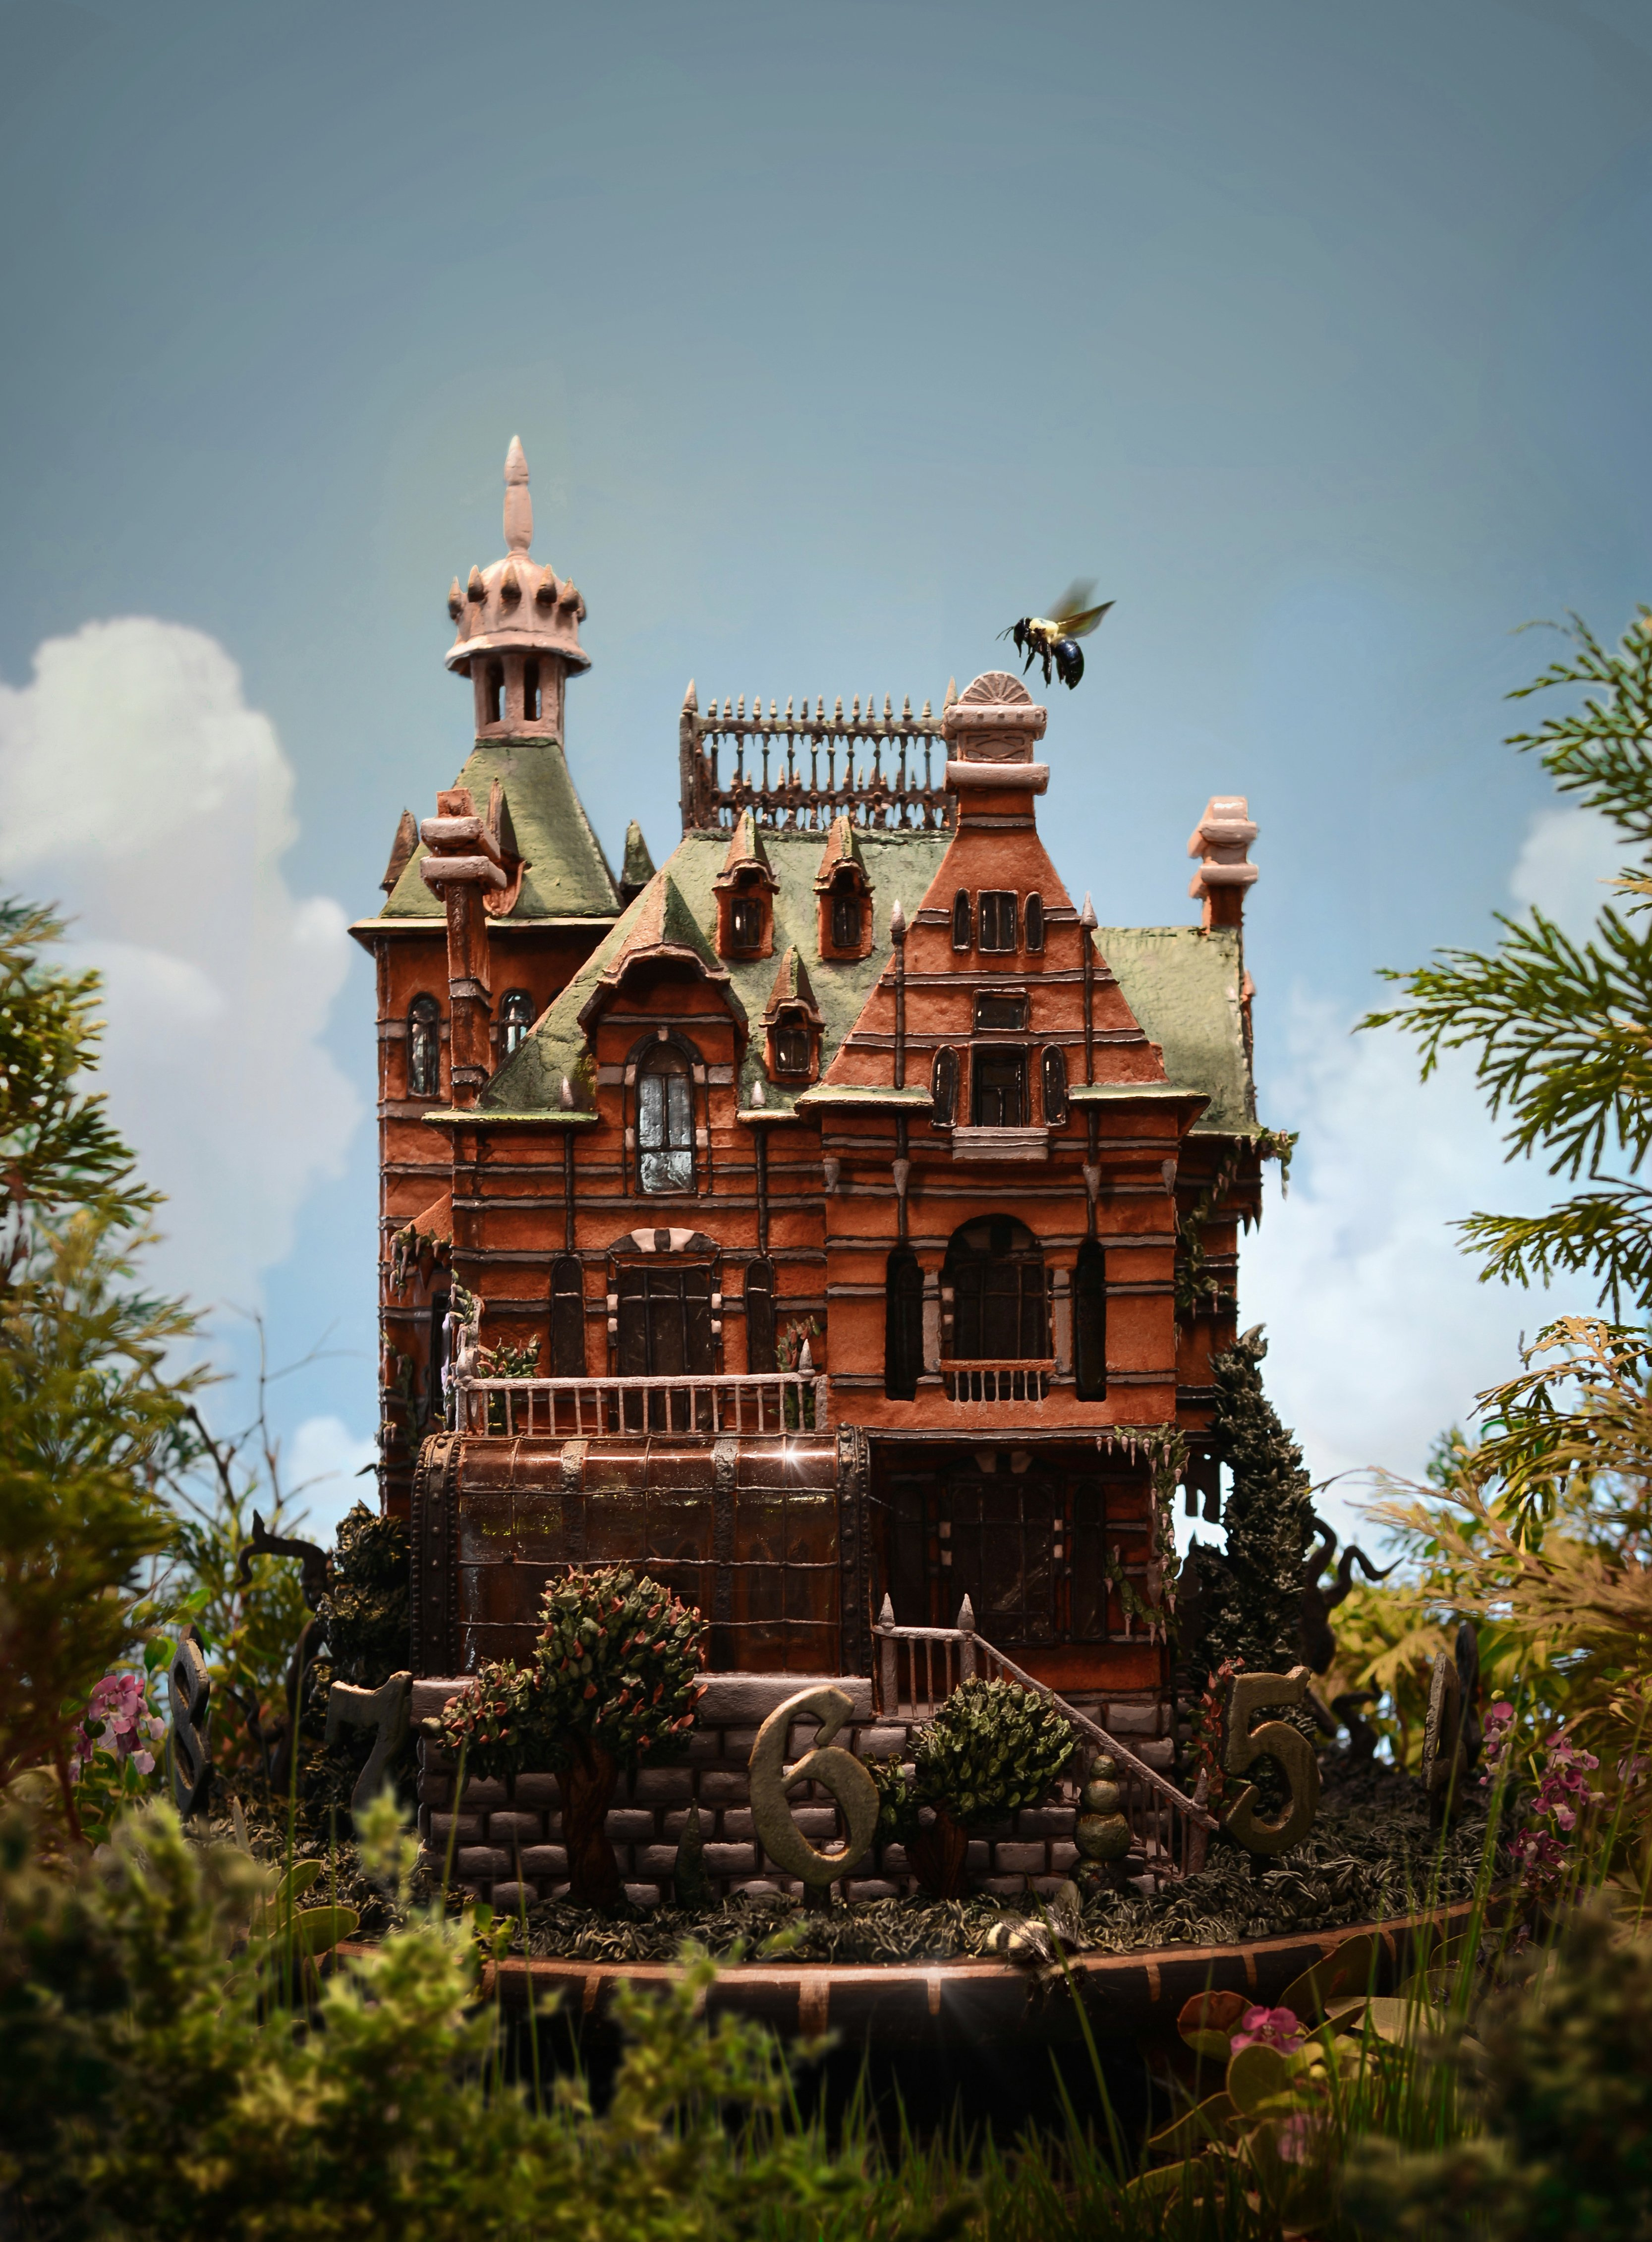 A Tim Burton Gingerbread House & More Incredible Links